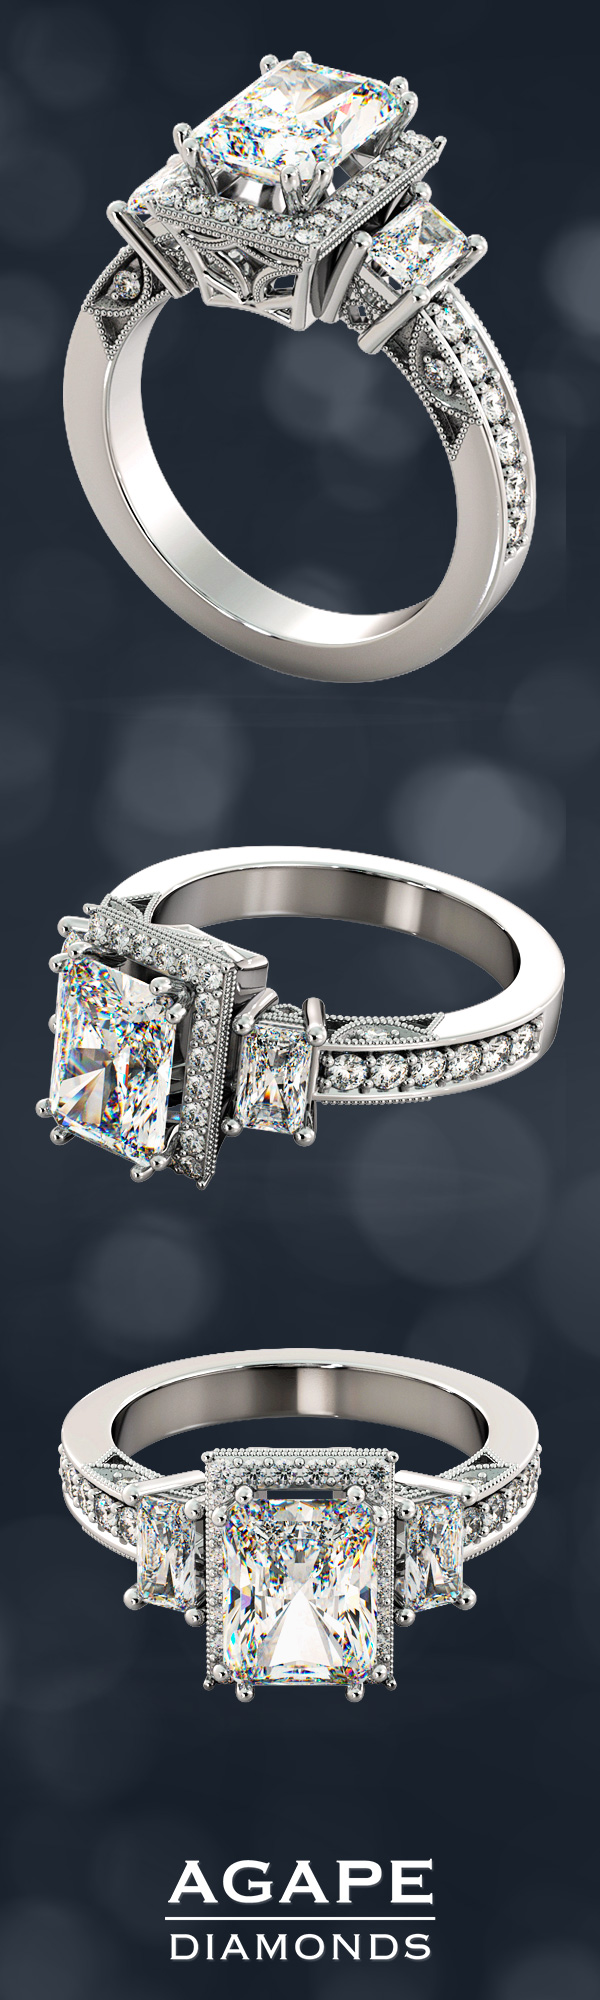 This three stone radiant cut engagement ring is positively divine